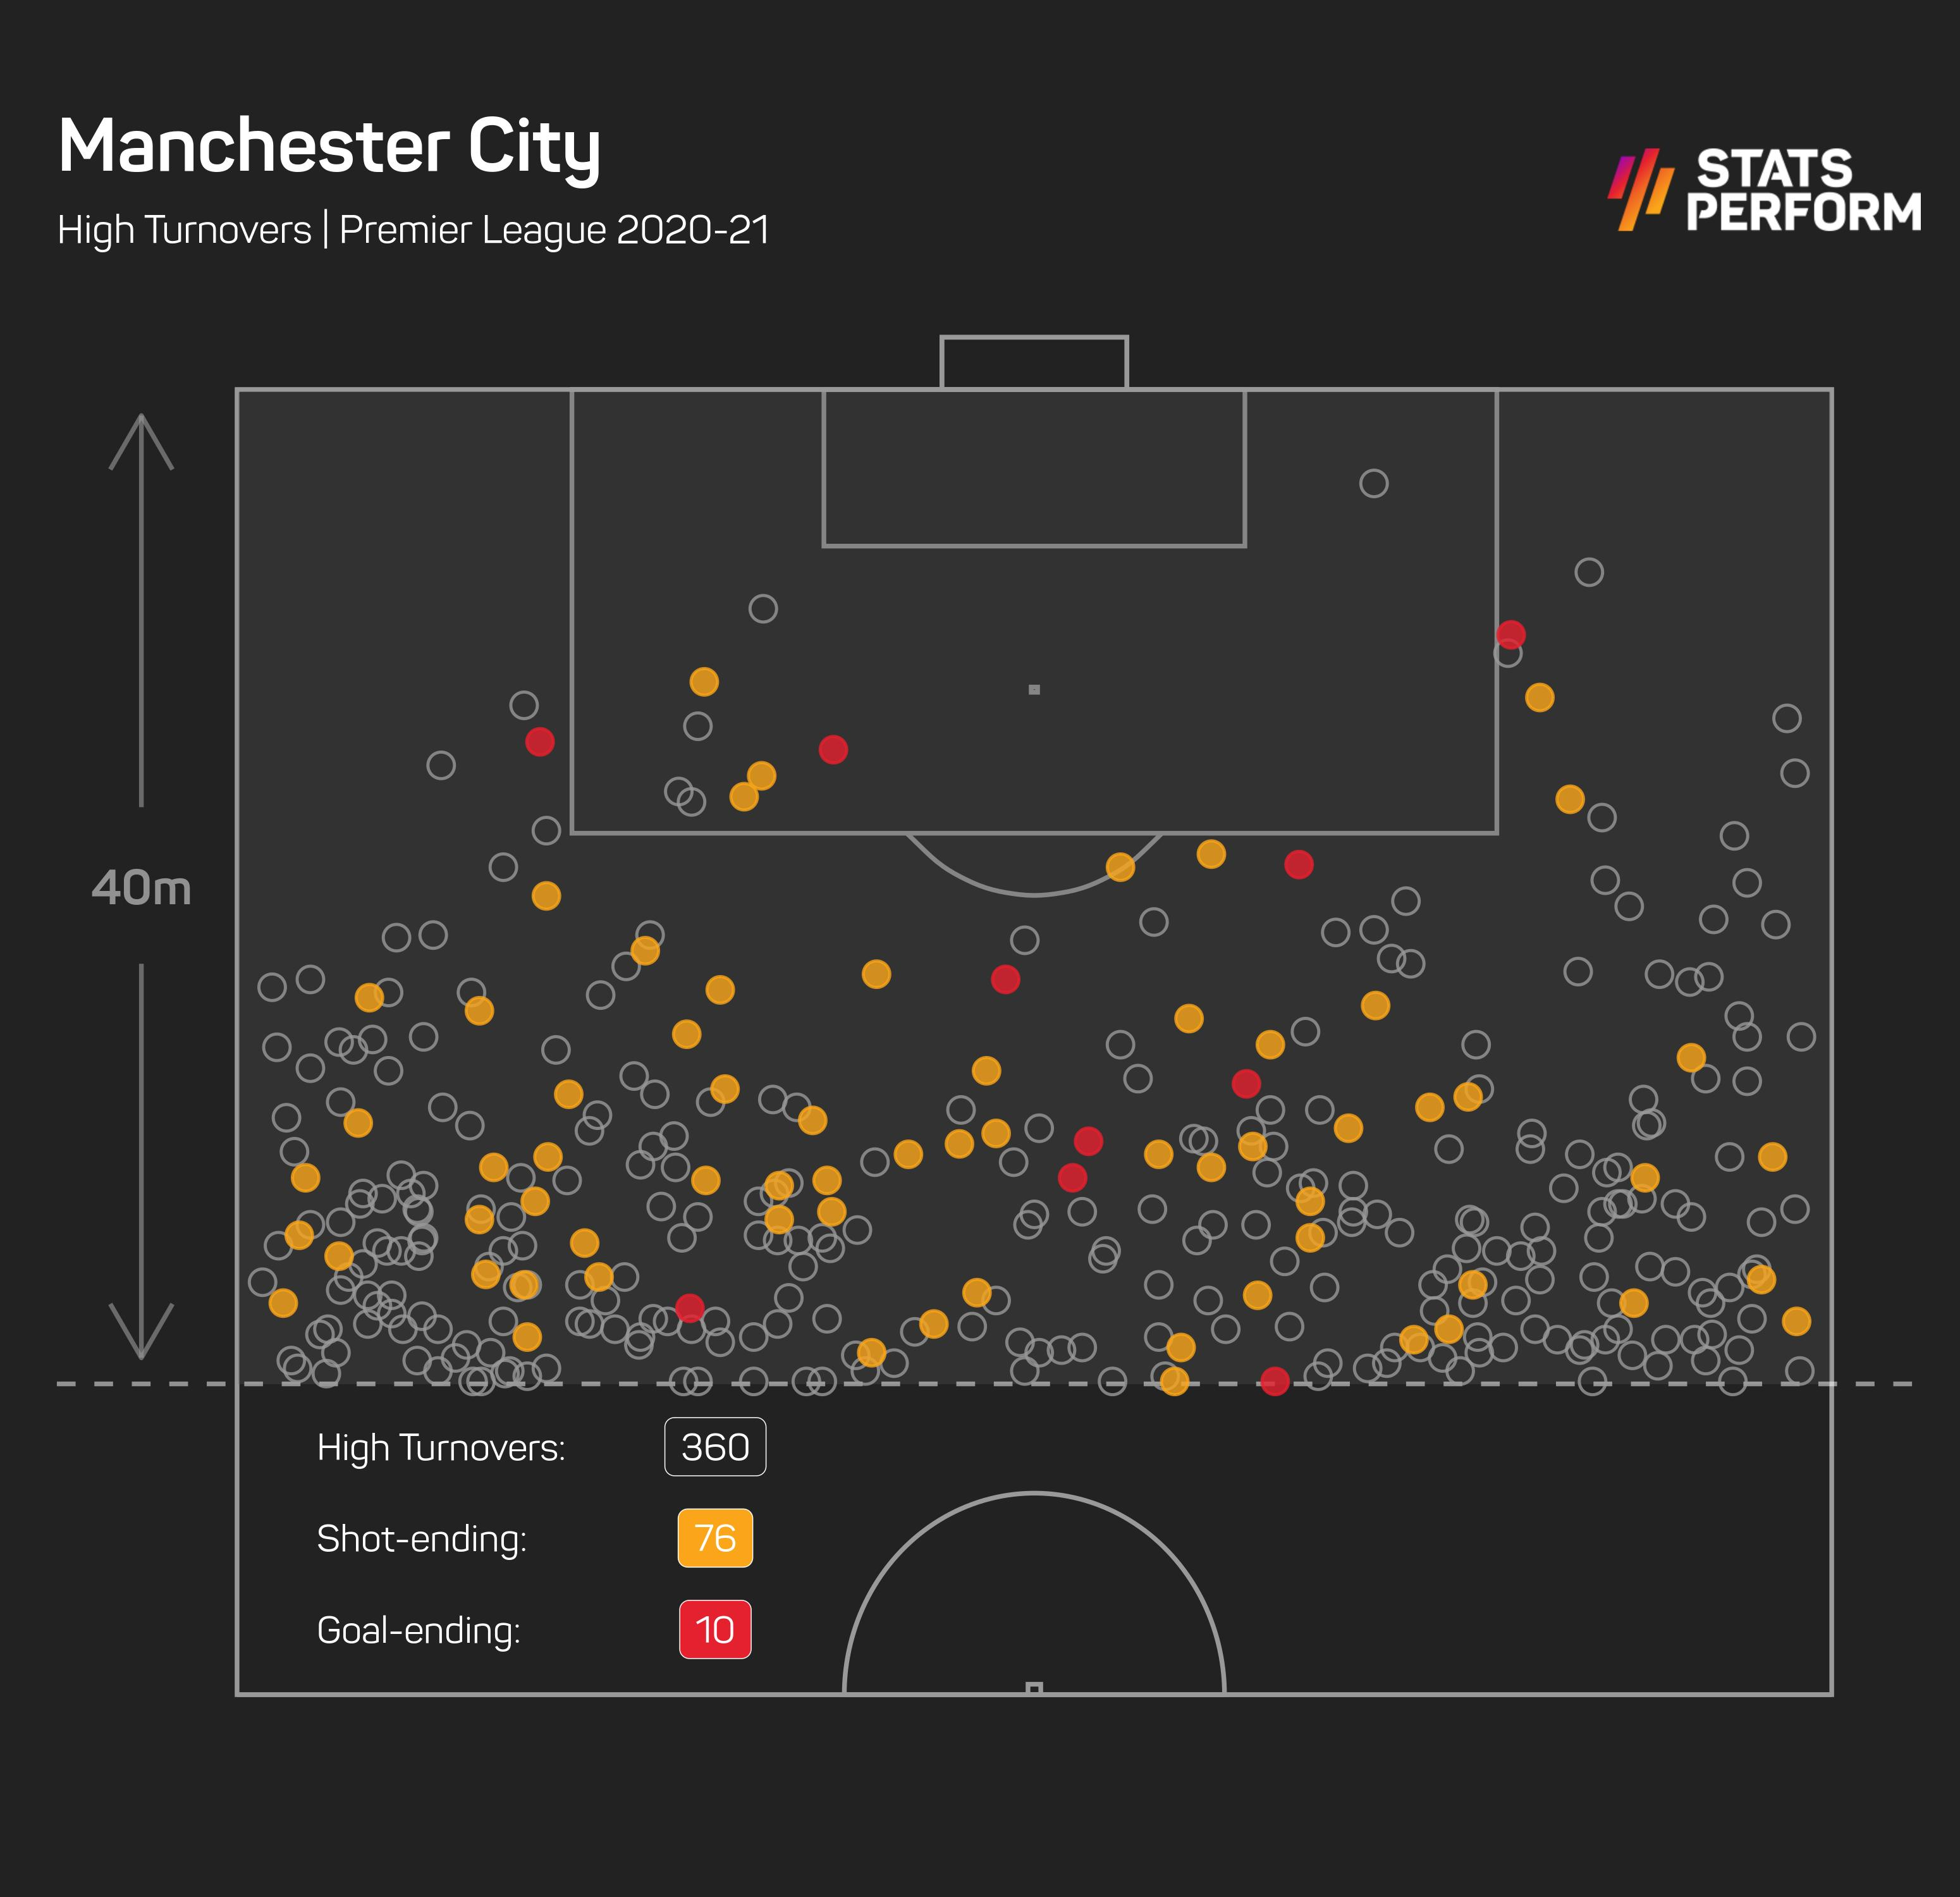 Manchester City high turnovers 2020-21